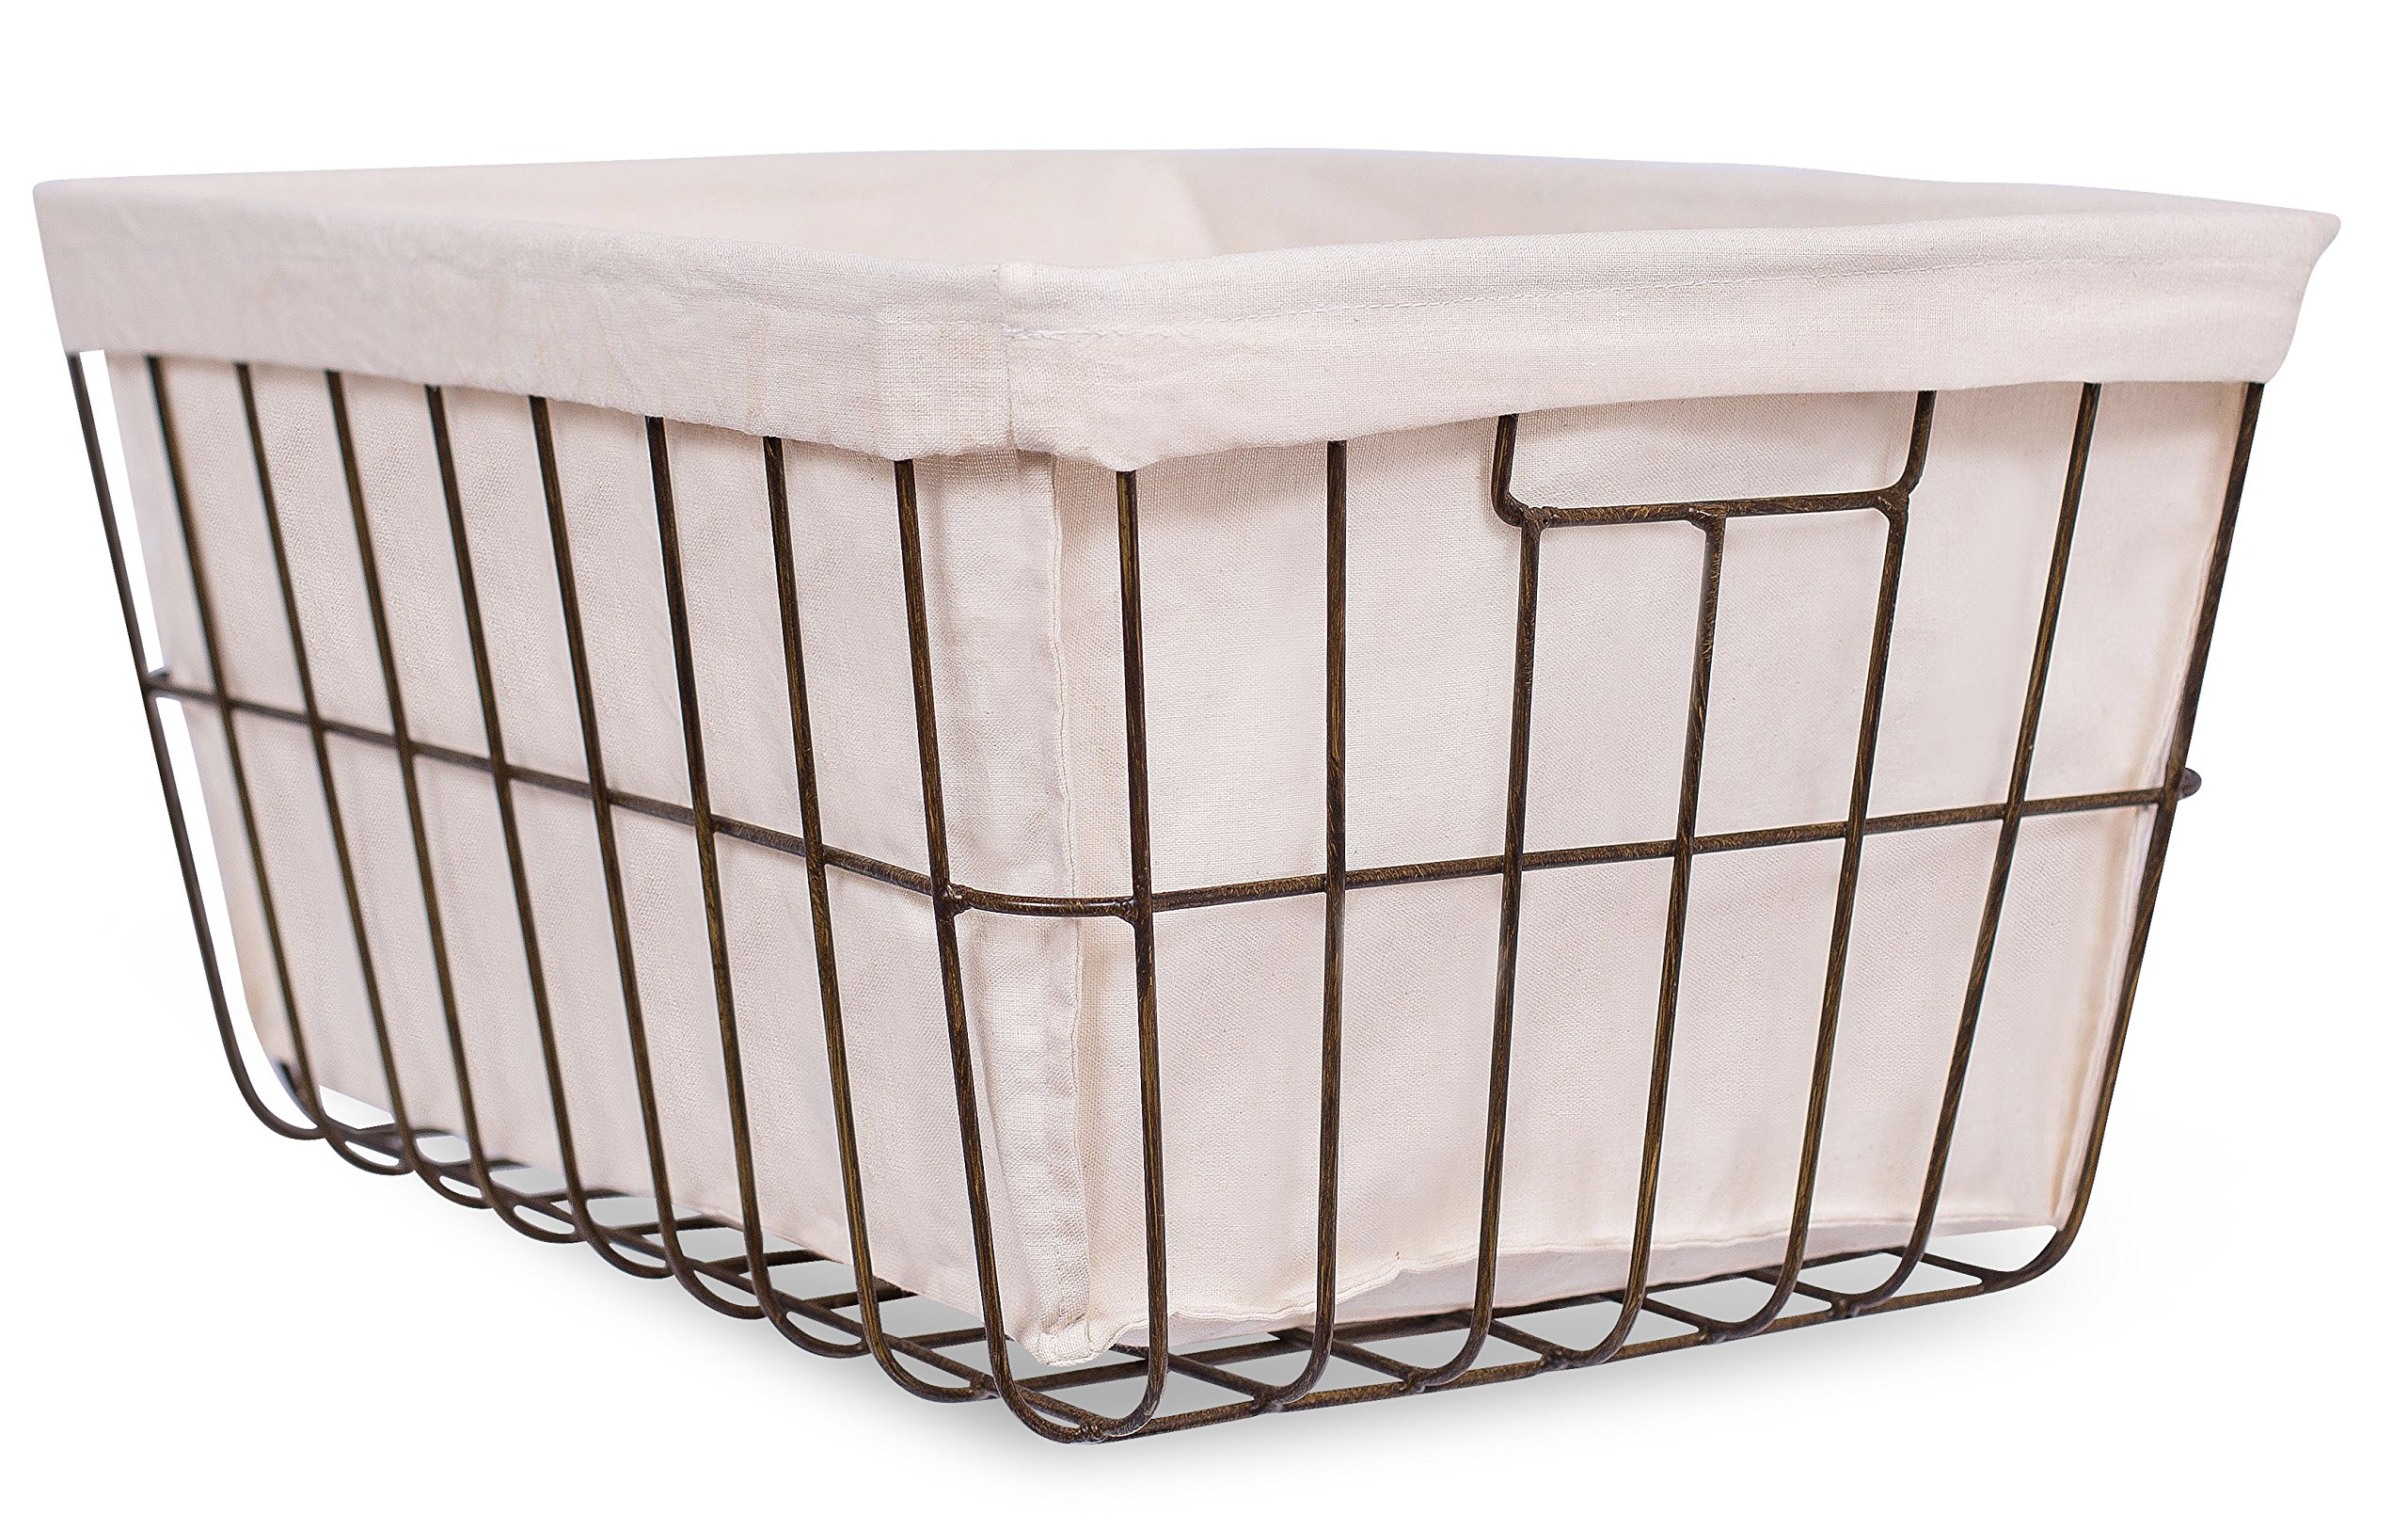 BirdRock Home Office Wire Basket with Liner | Rectangular | Modern Age | Home Storage Bins | Decorative | Metal Frame | Recycle Trash Can